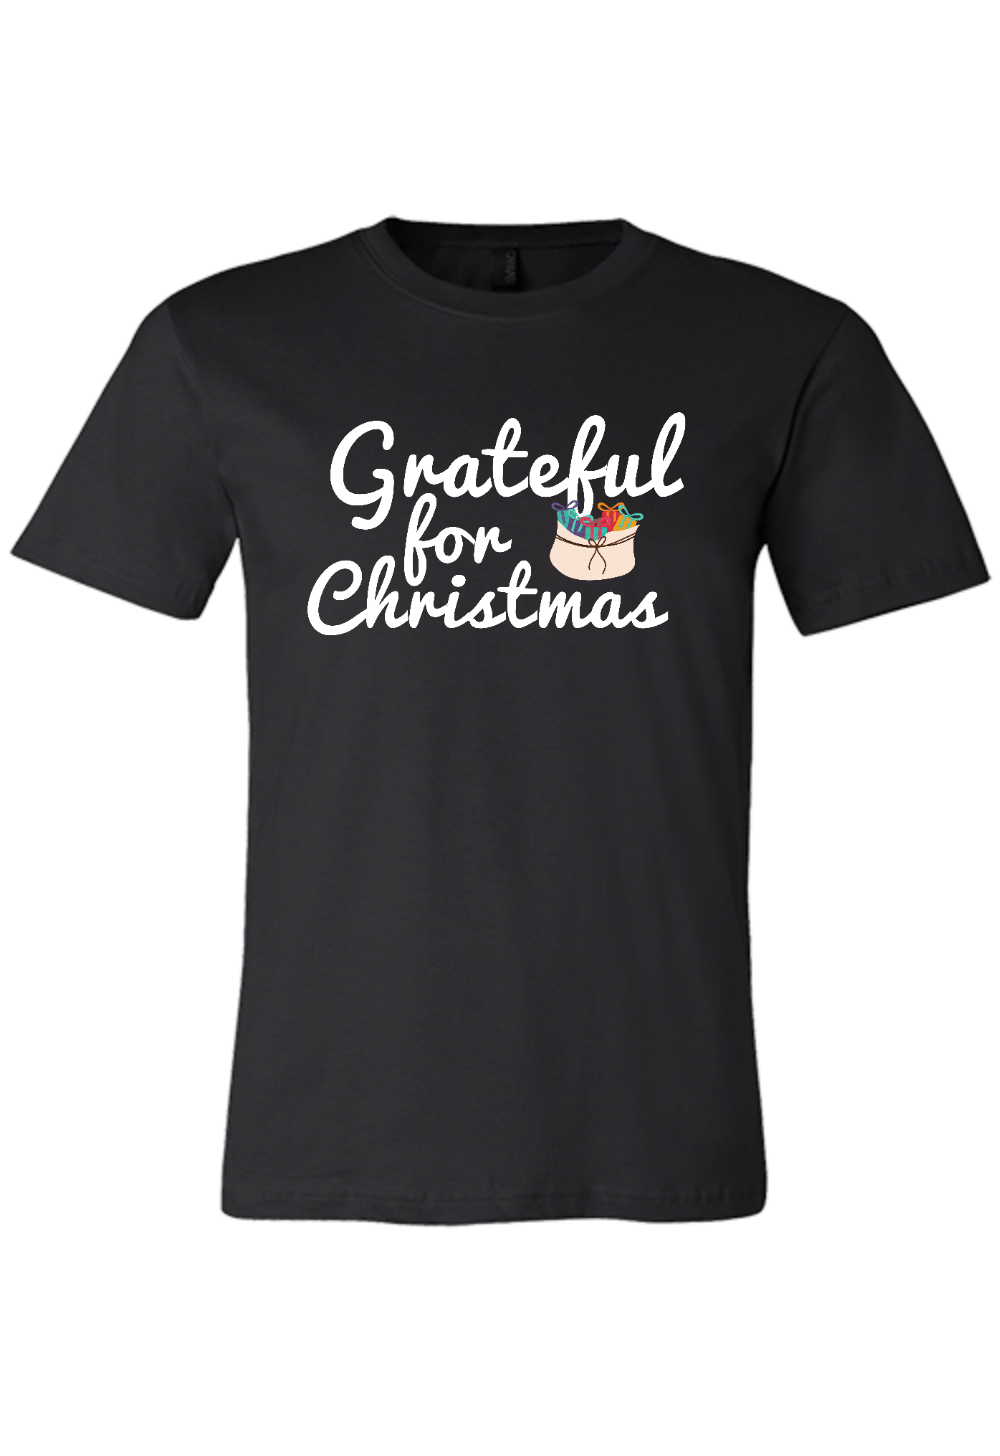 Grateful for Christmas Shirt